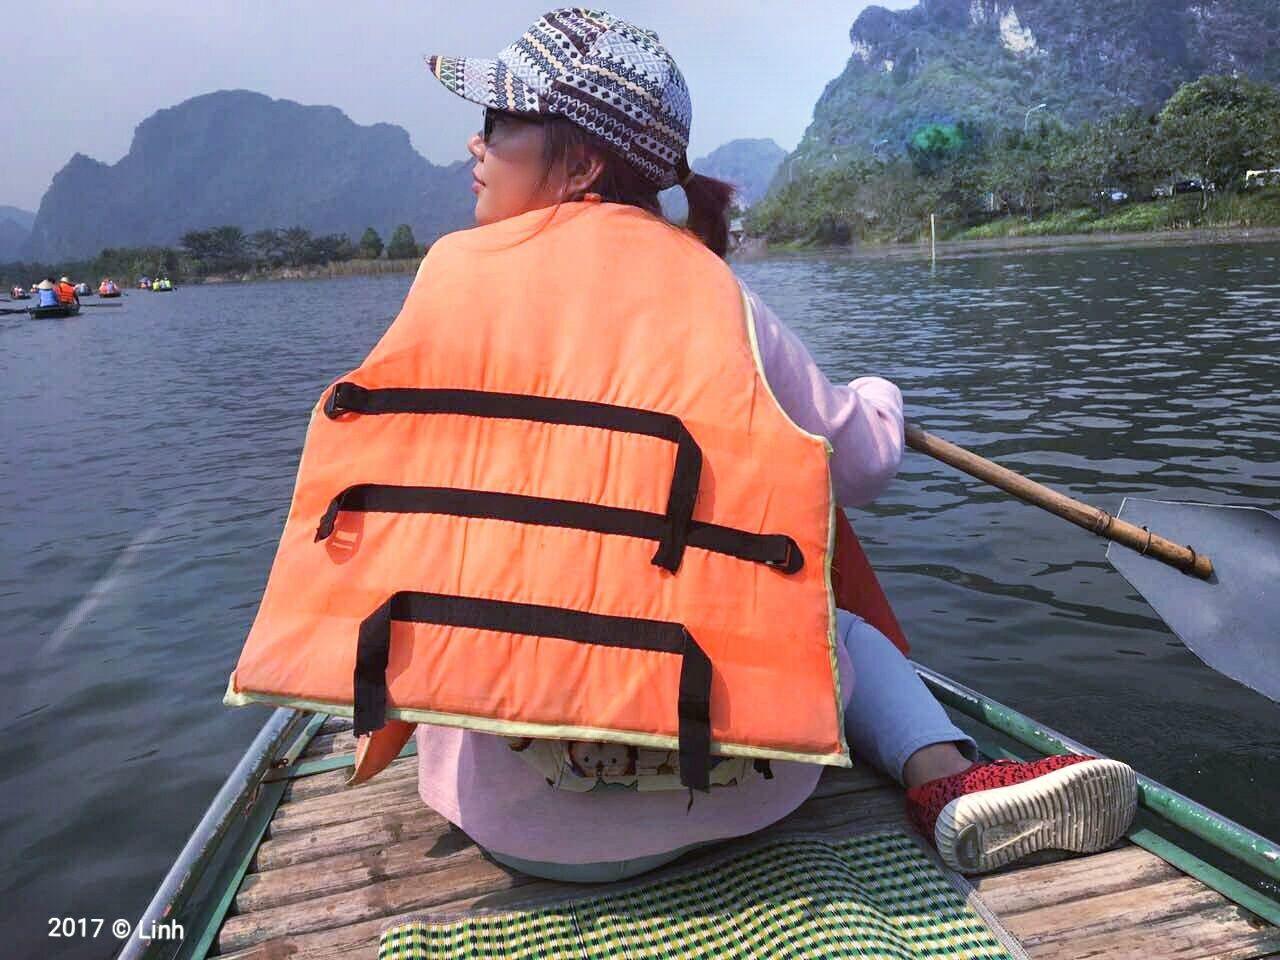 Water Transportation Archival Lake Outdoors Vacations Kayak People Nature Sailing Vietnam Love Kong Skull Island Mountain Wildlife & Nature Wild Intothewild